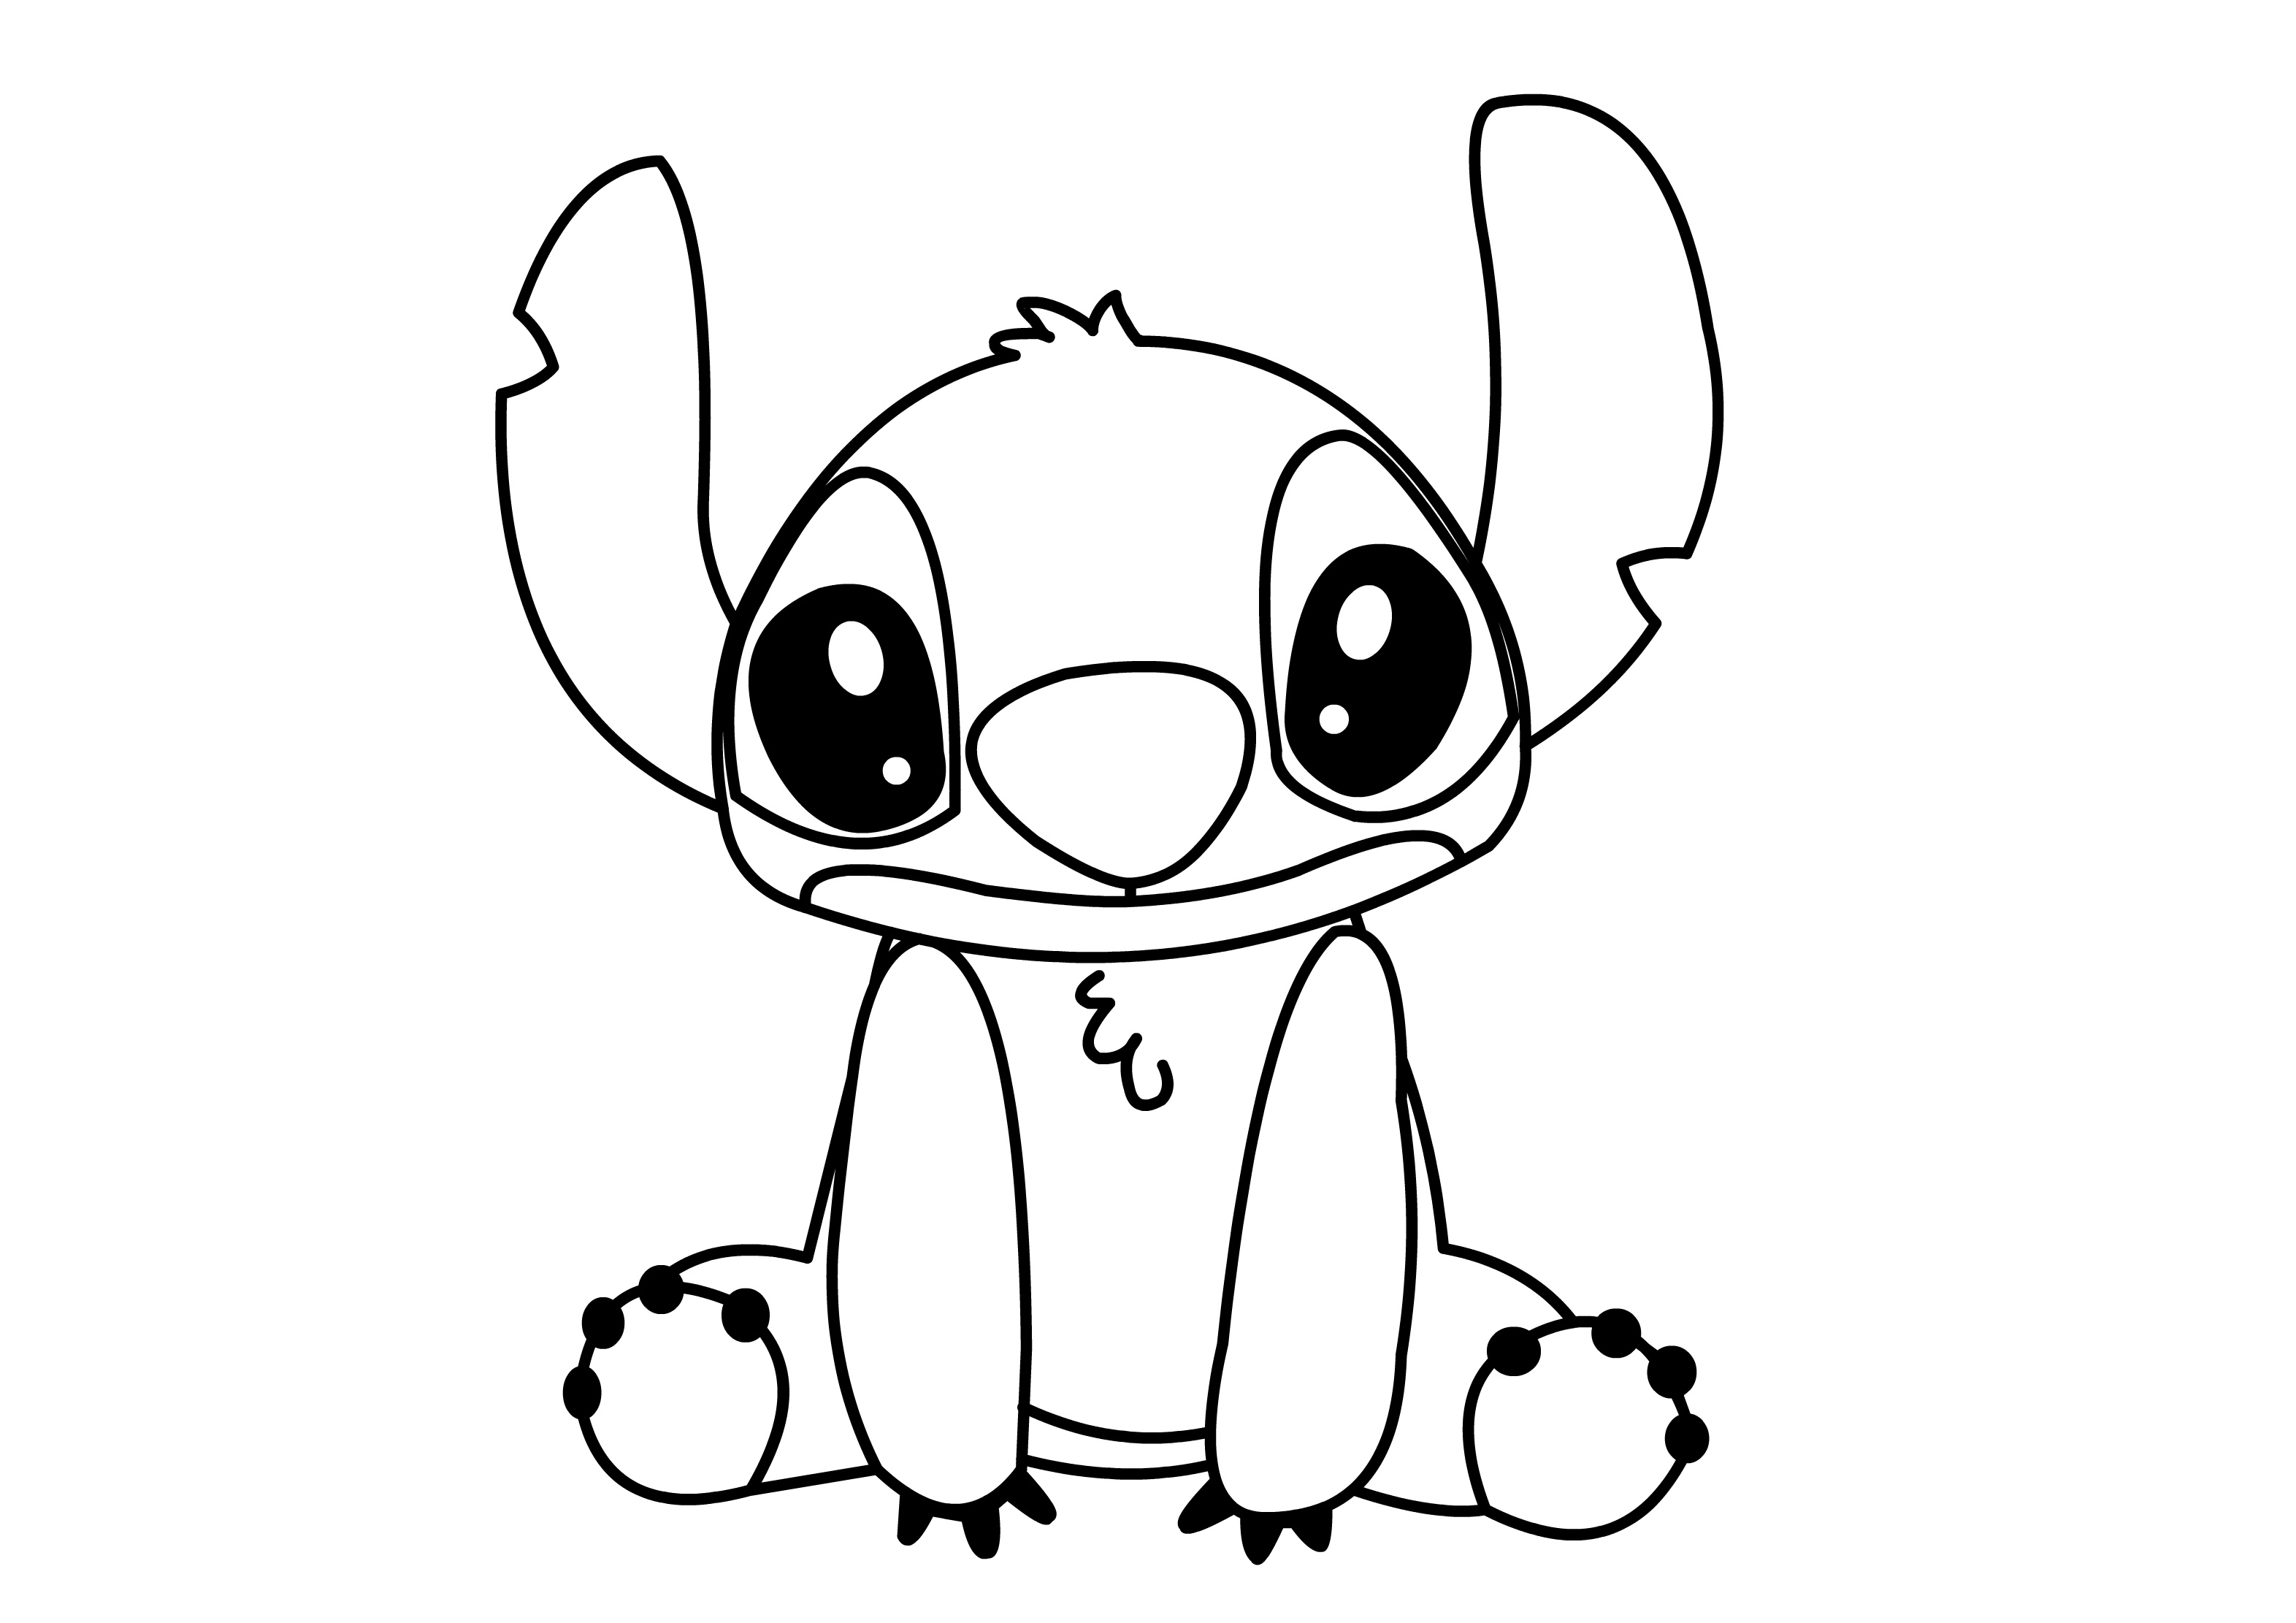 lilo and stitch pictures to print lilo and stitch coloring pages to download and print for free print and stitch to pictures lilo